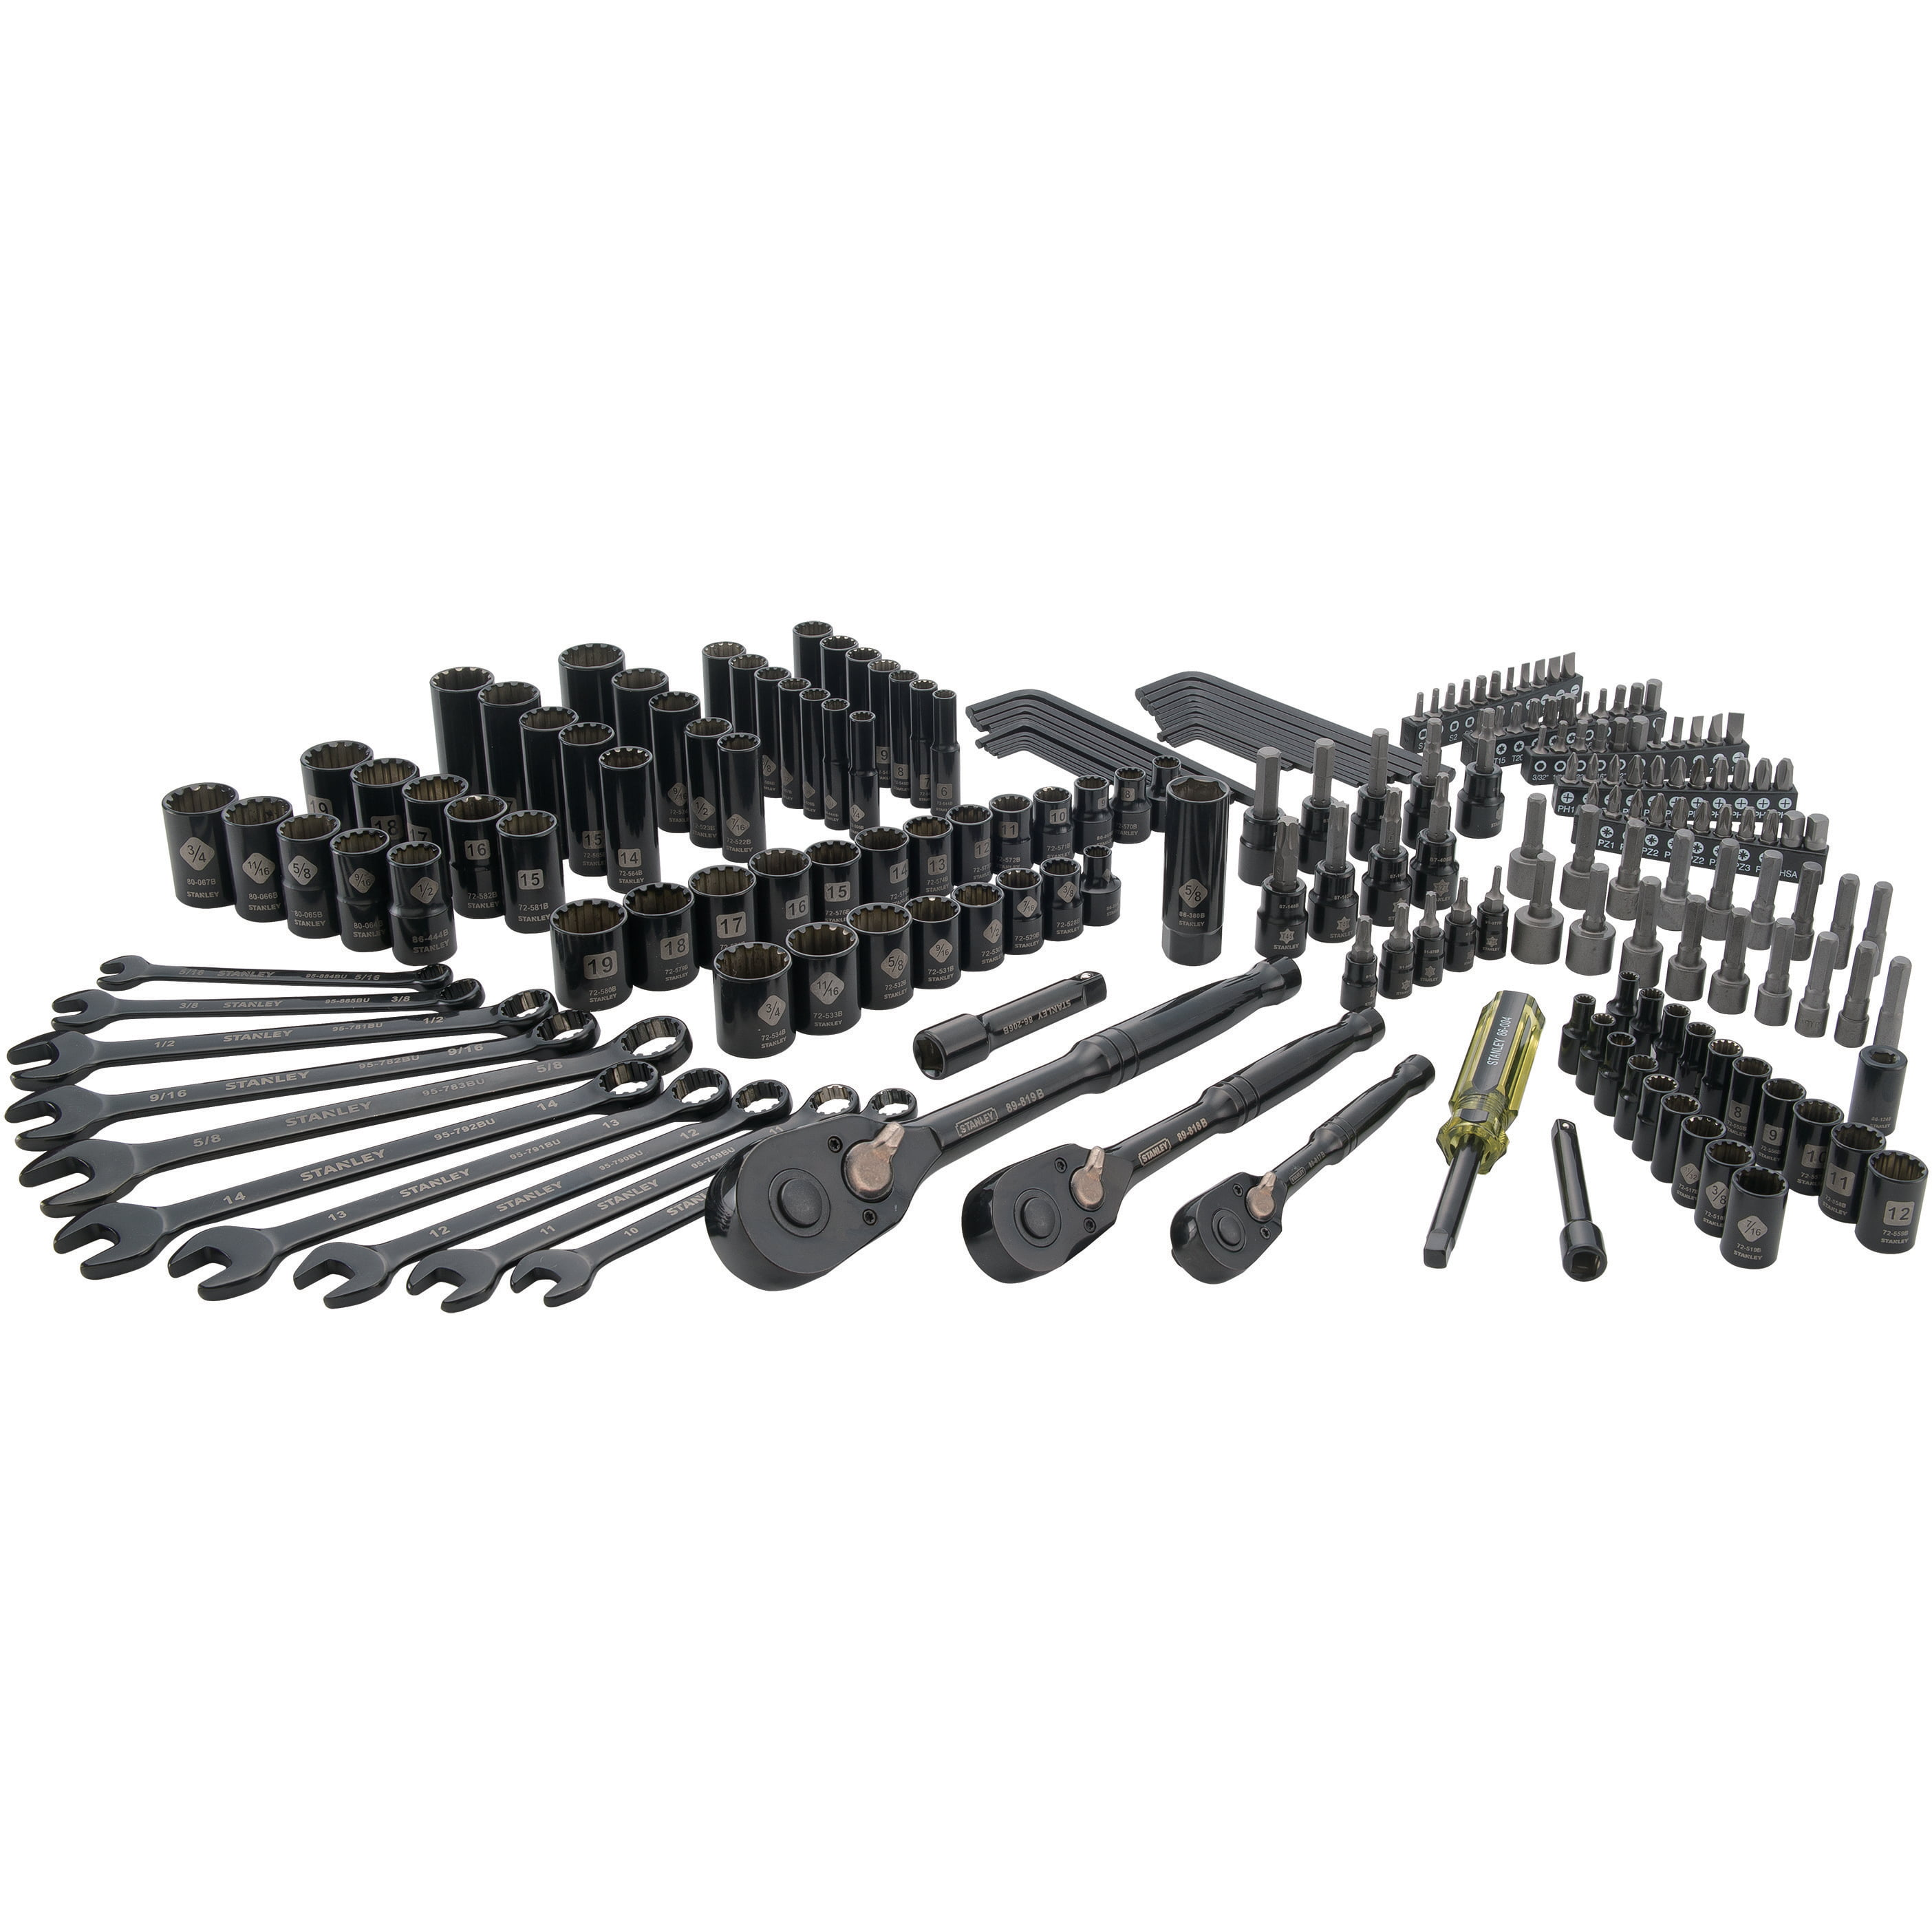 STANLEY 207-Piece Black Chrome Mechanics Tool Set | STMT81190 by Stanley Black & Decker